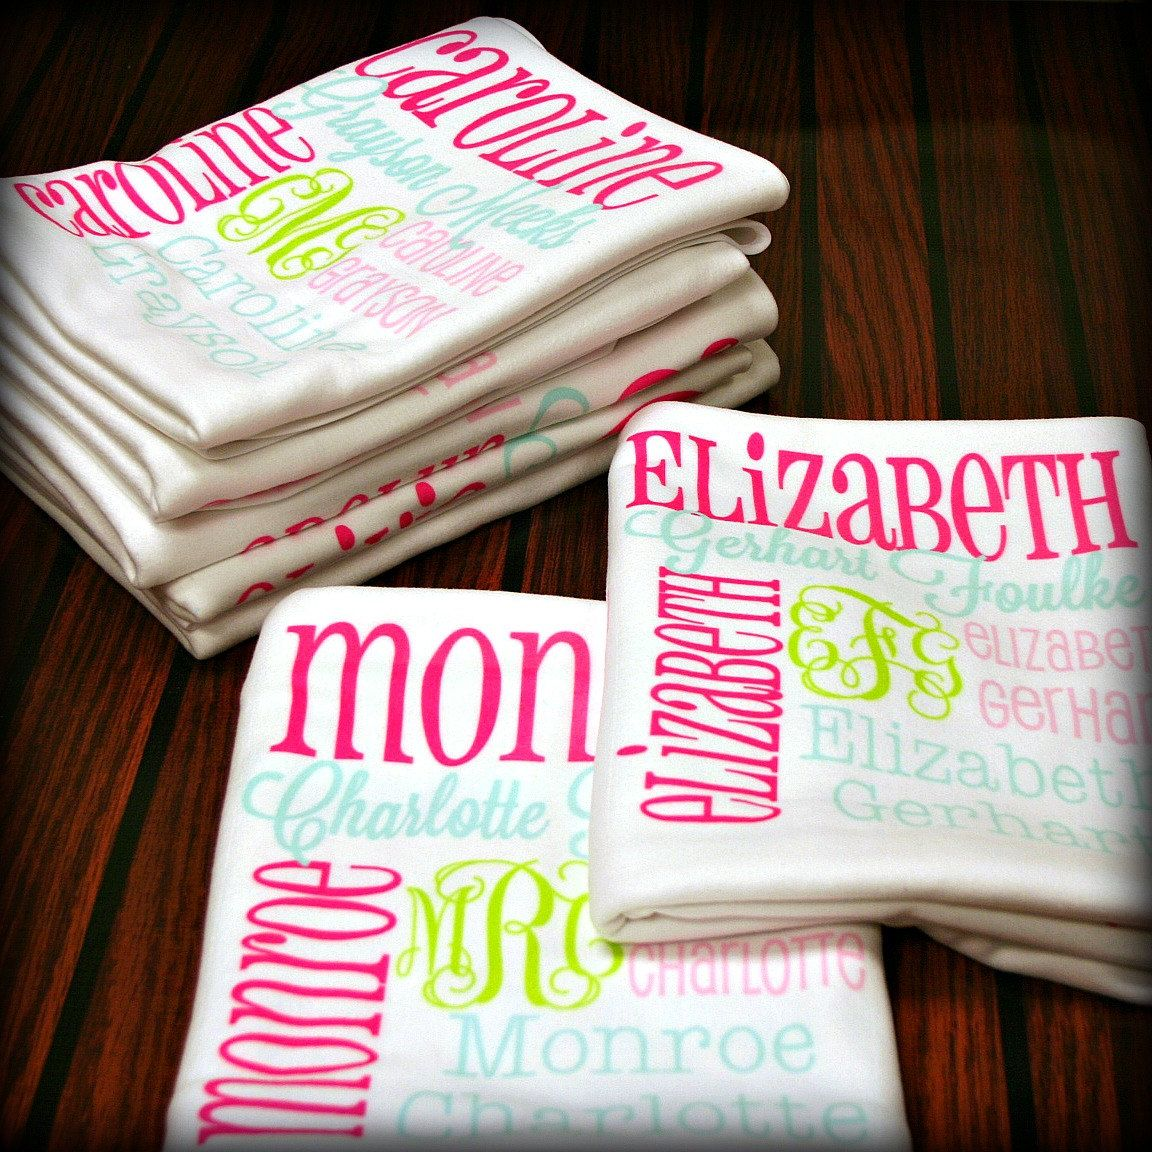 How flipping adorable are these theyll do up to 4 different personalized baby blanket monogrammed baby blanket name blanket swaddle receiving blanket baby shower gift photo prop birth announcement negle Image collections